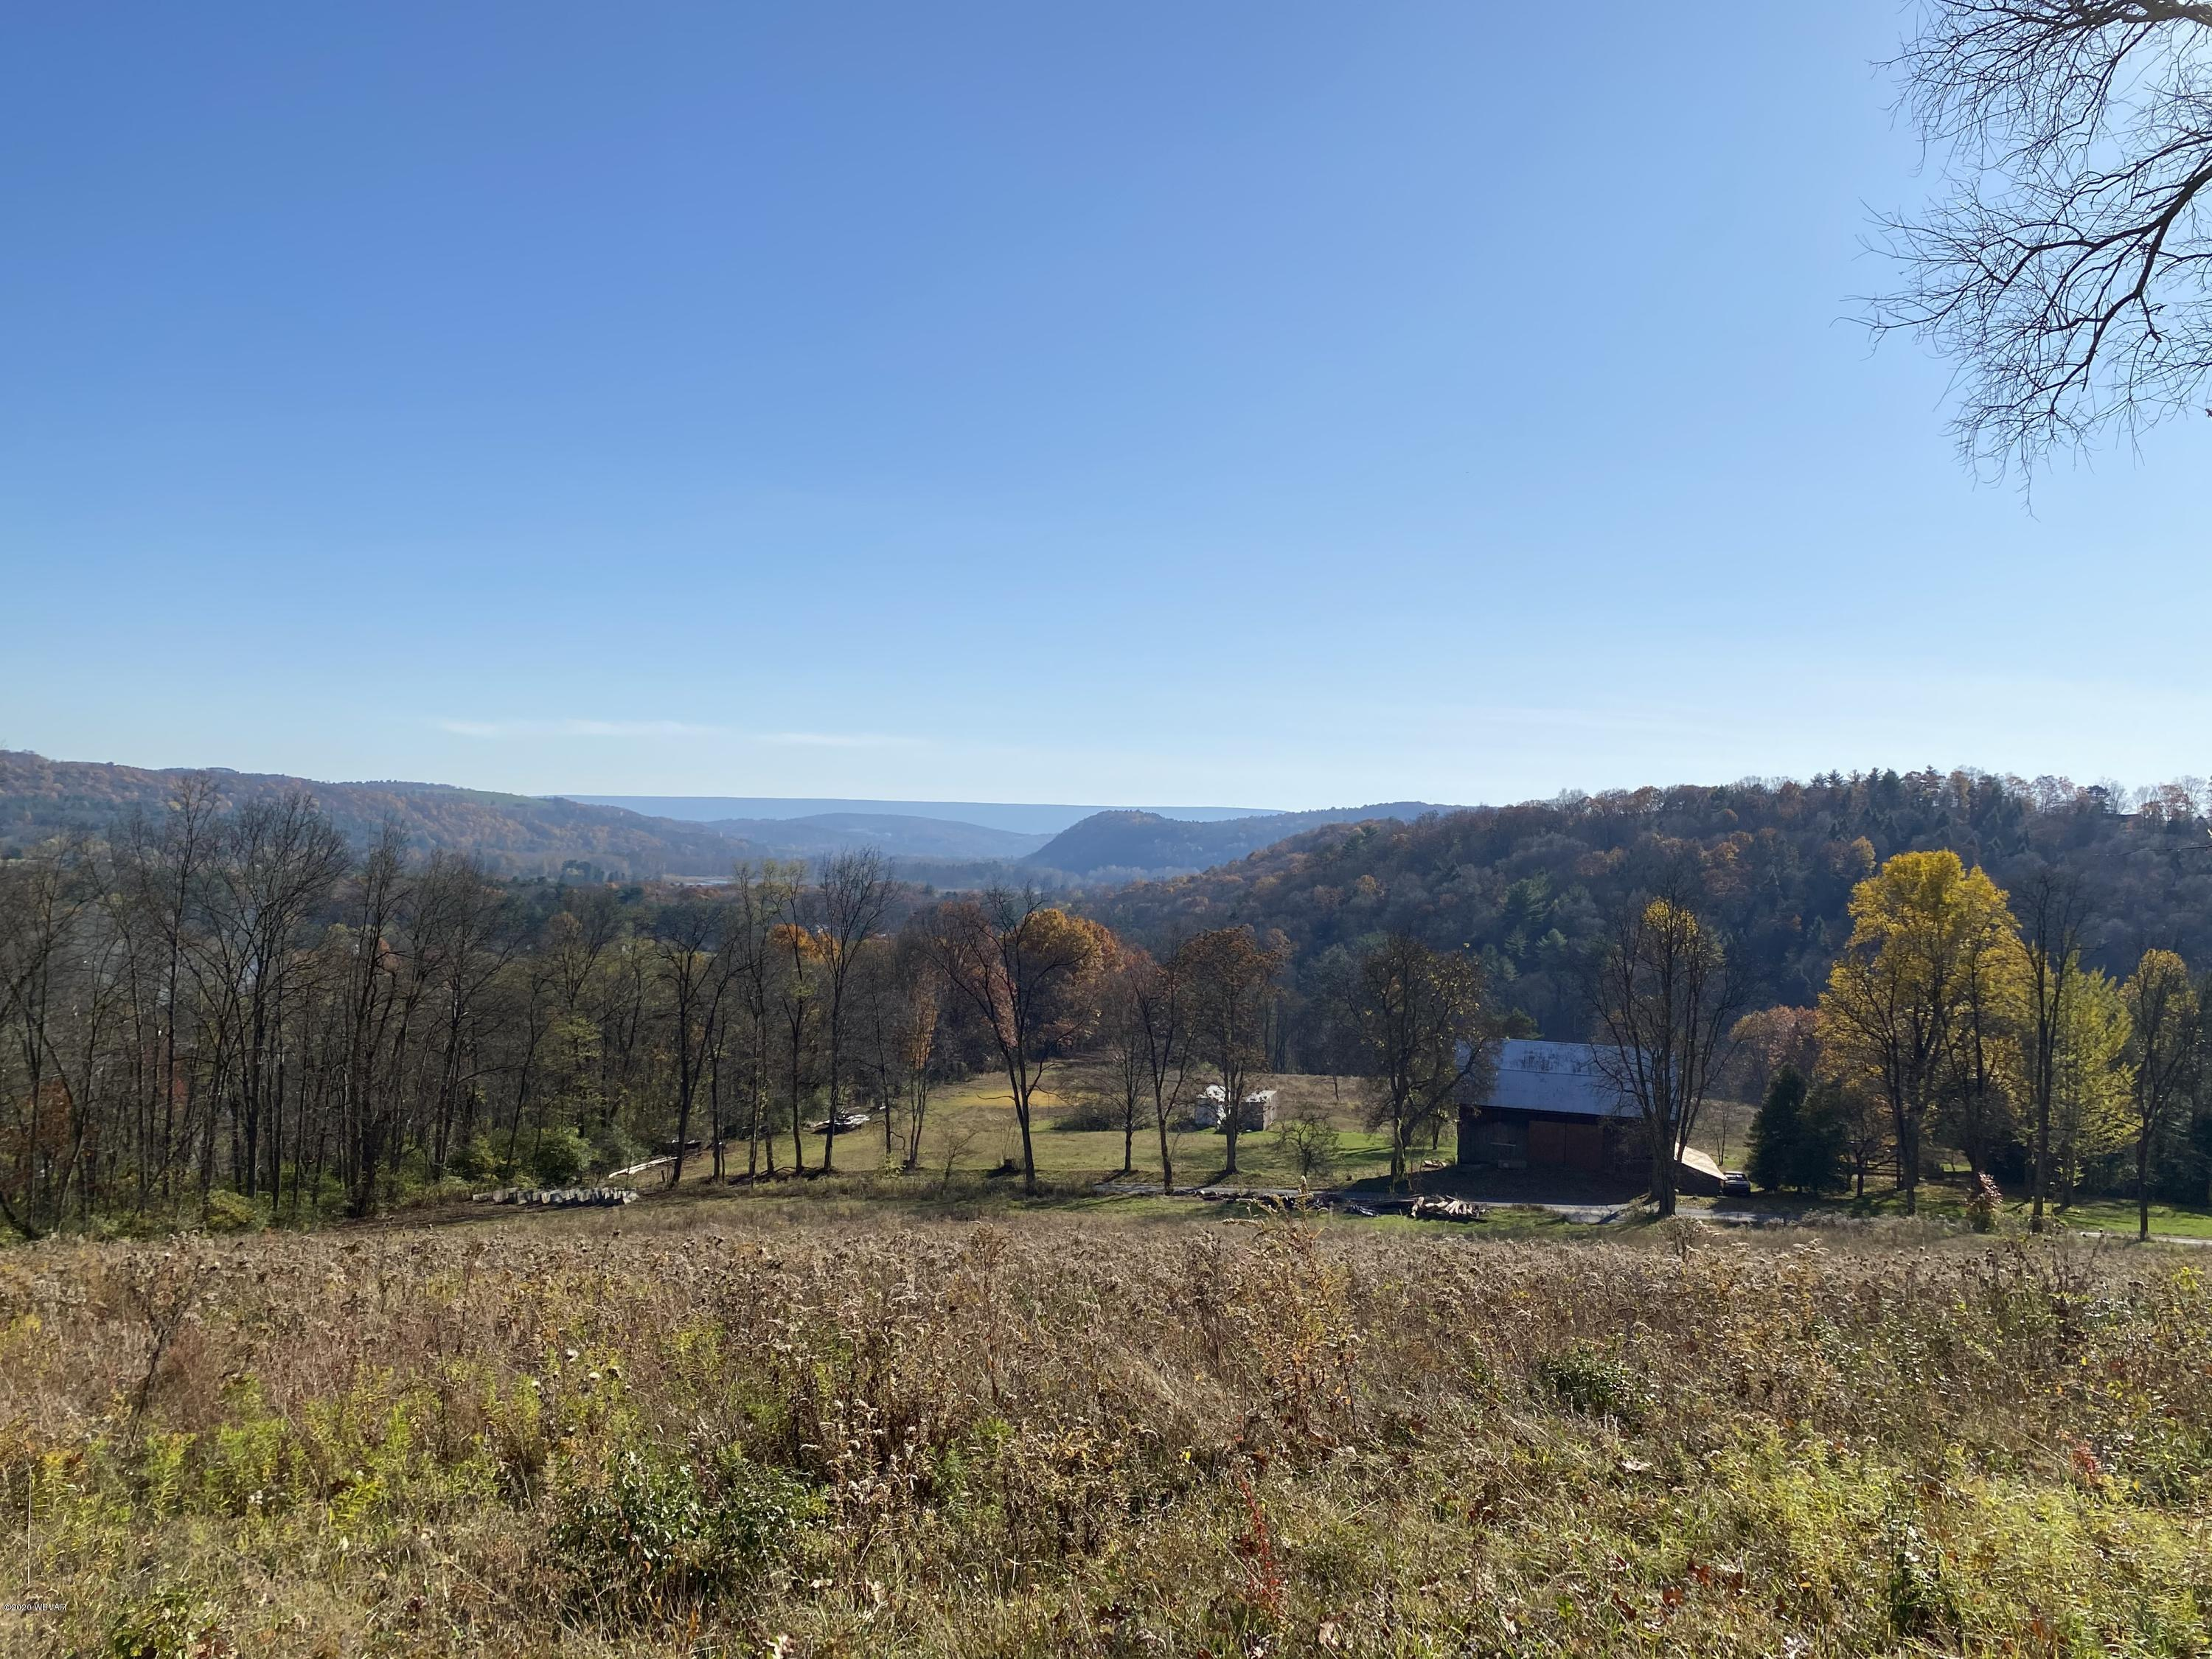 0 YEAGLE ROAD, Montoursville, PA 17754, ,Land,For sale,YEAGLE,WB-91506